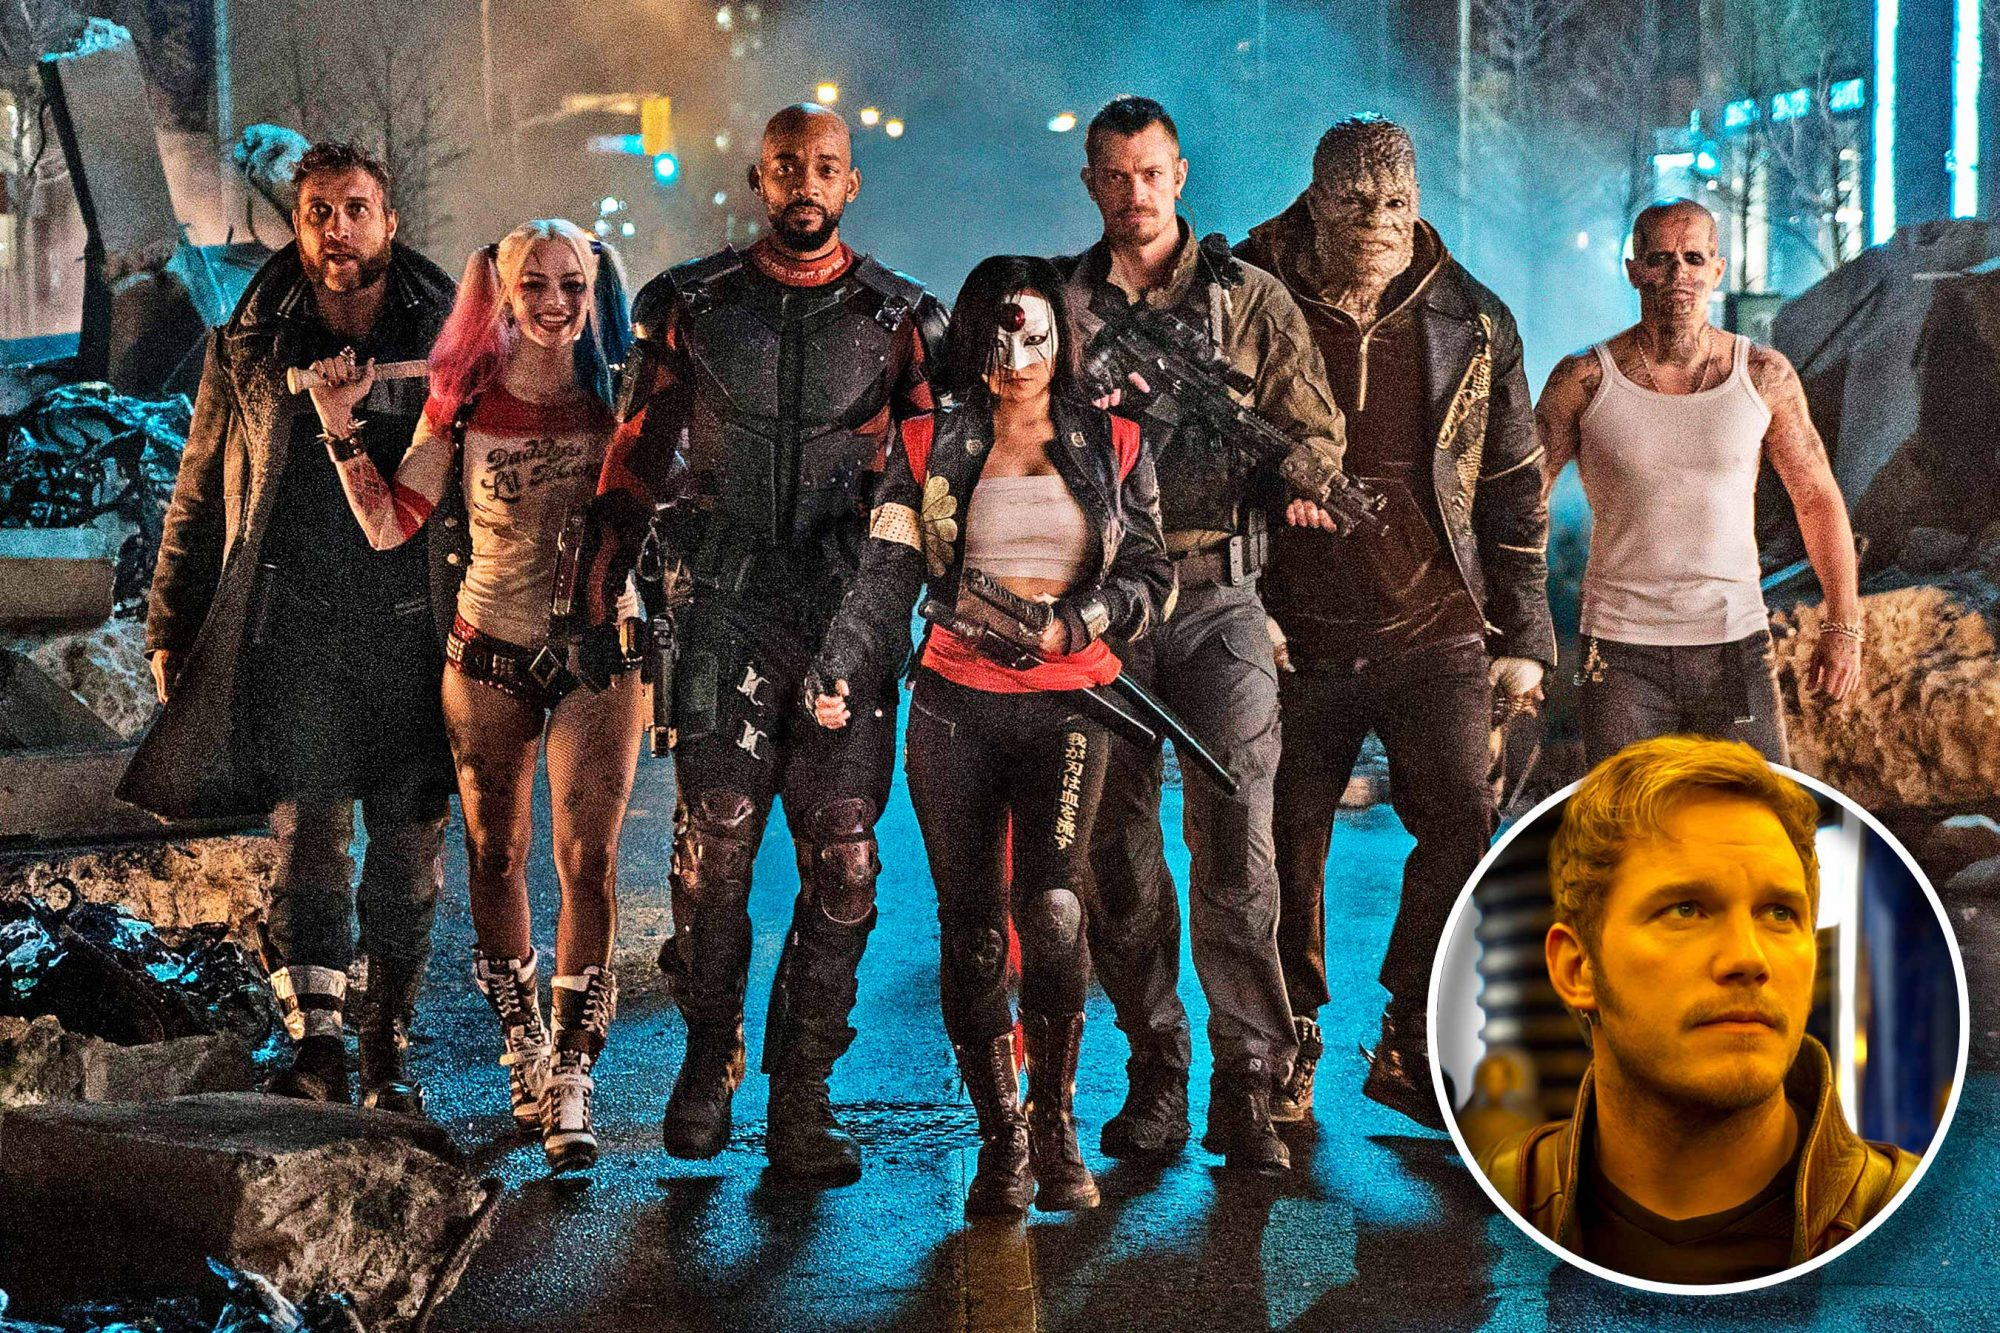 Suicide Squad and Guardians of the Galaxy 2